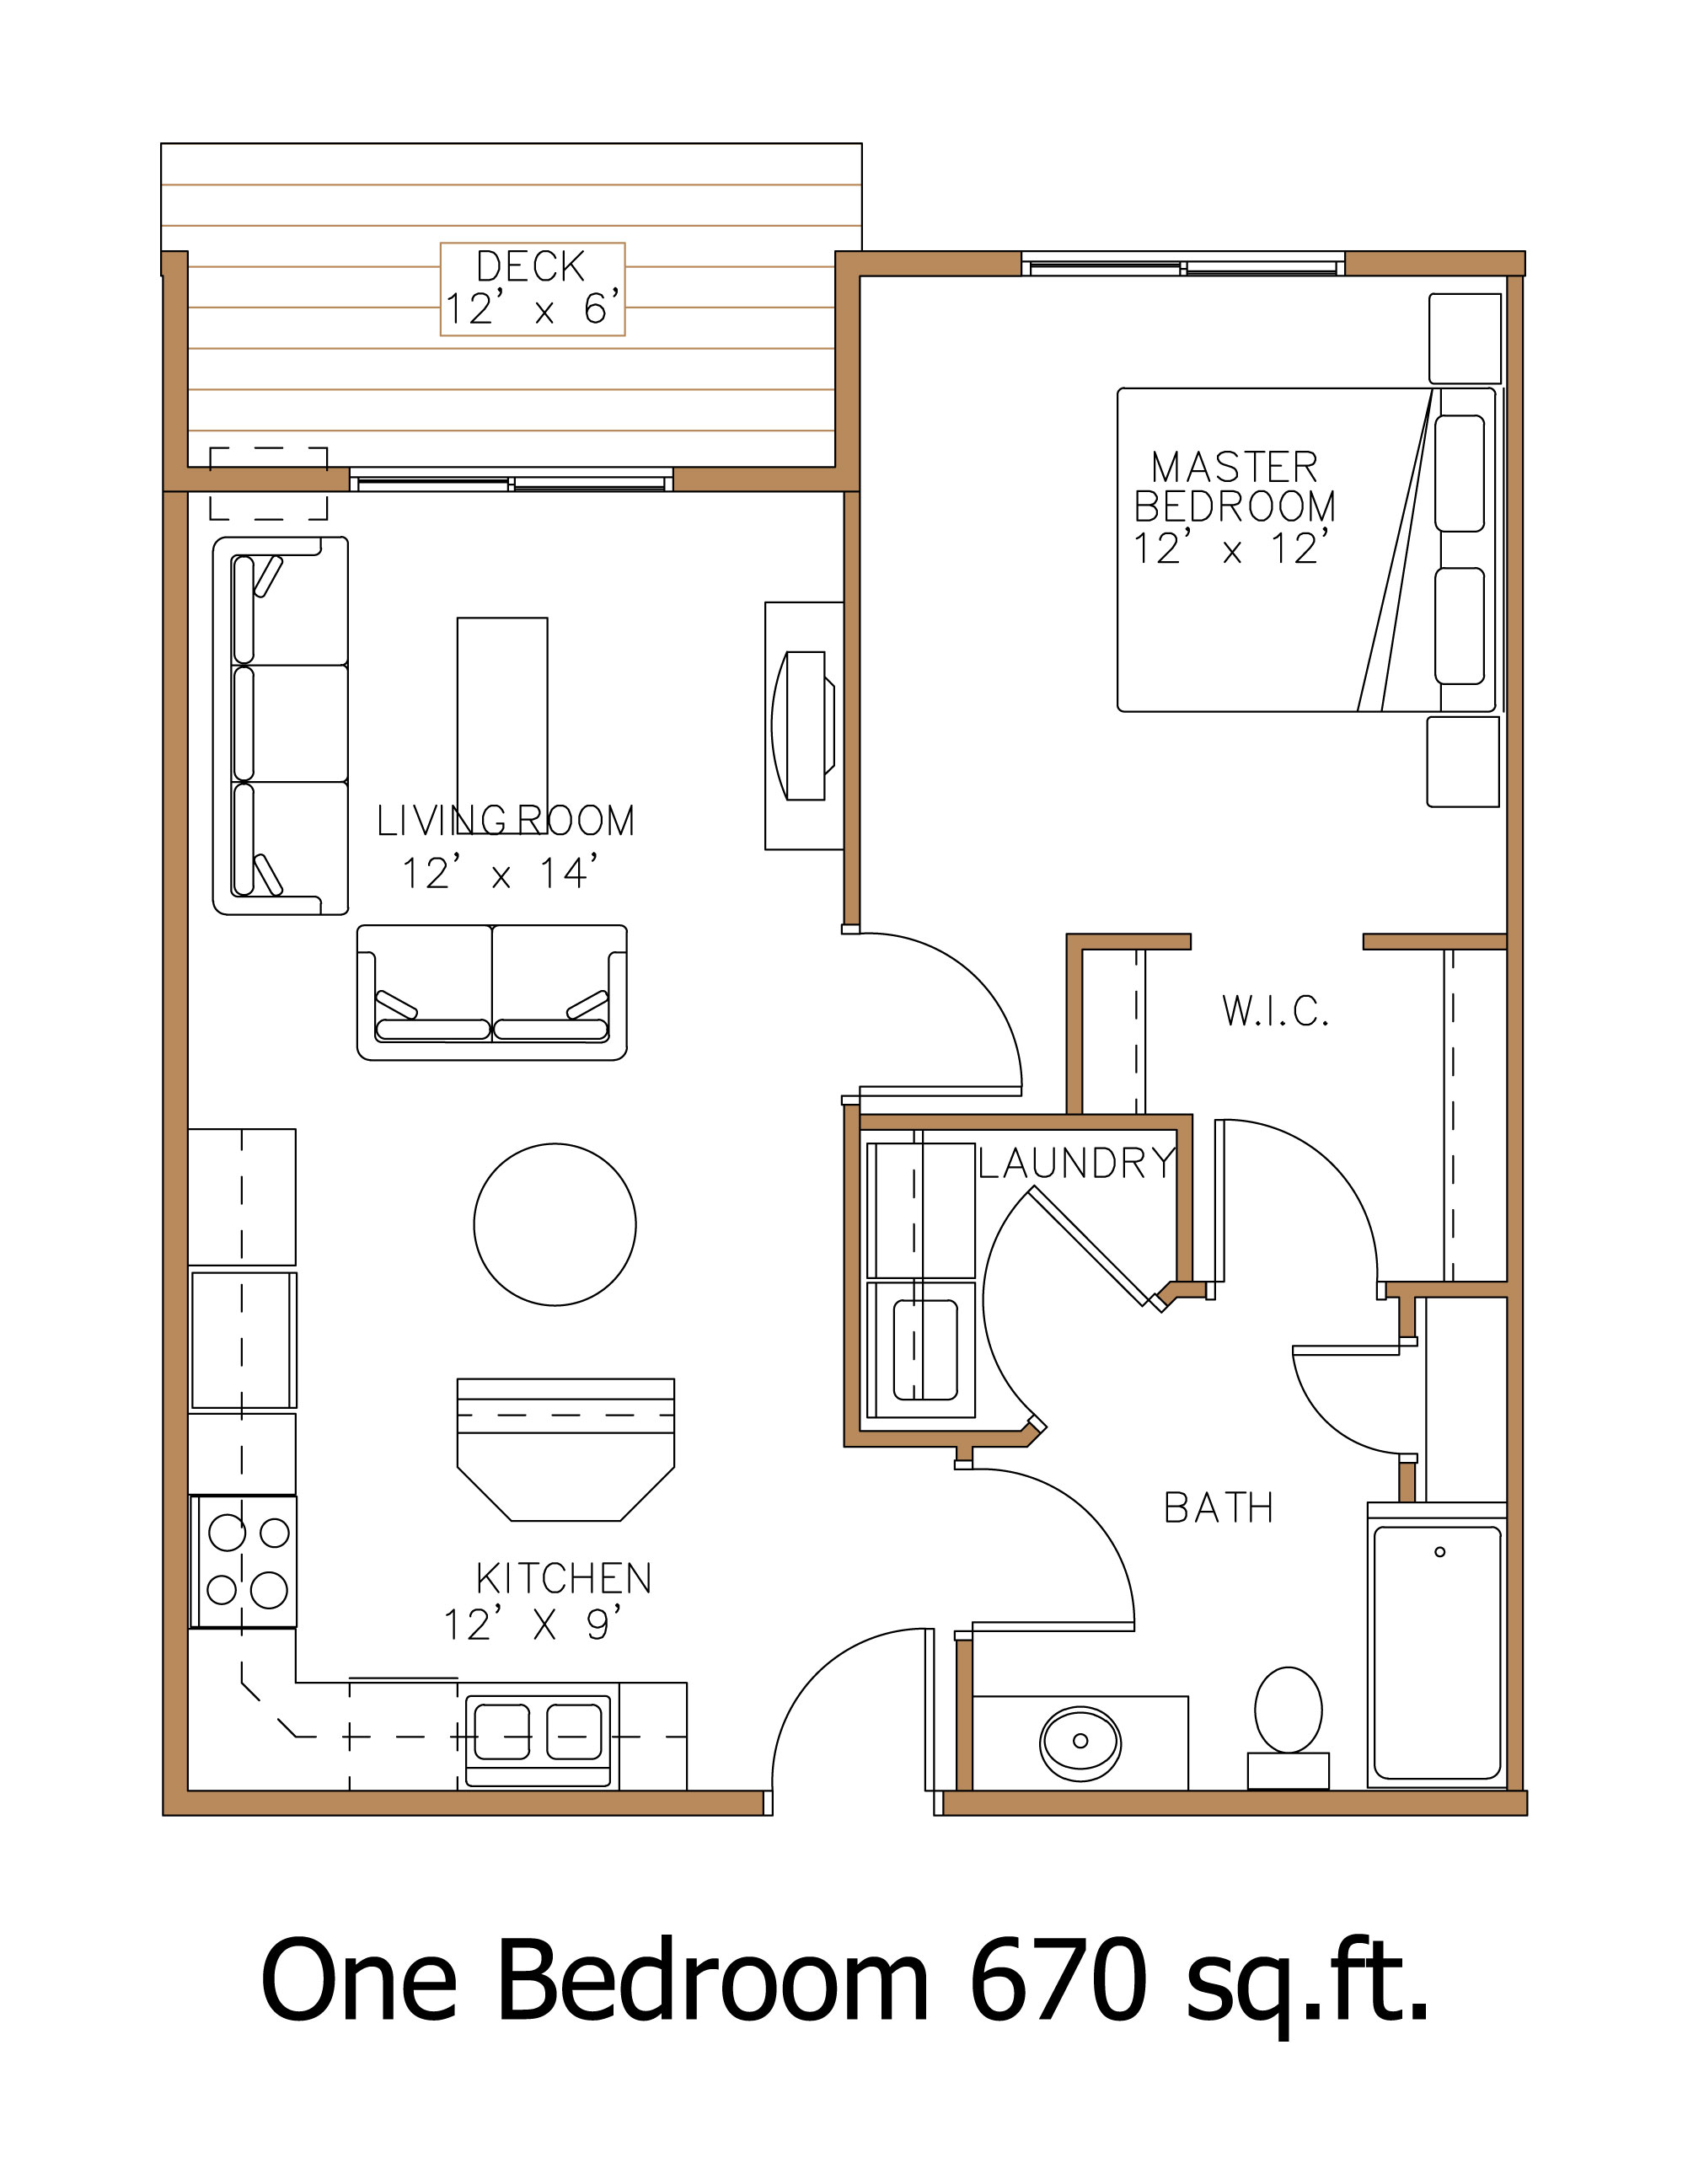 Hawley mn apartment floor plans great north properties llc for Single bedroom apartment design